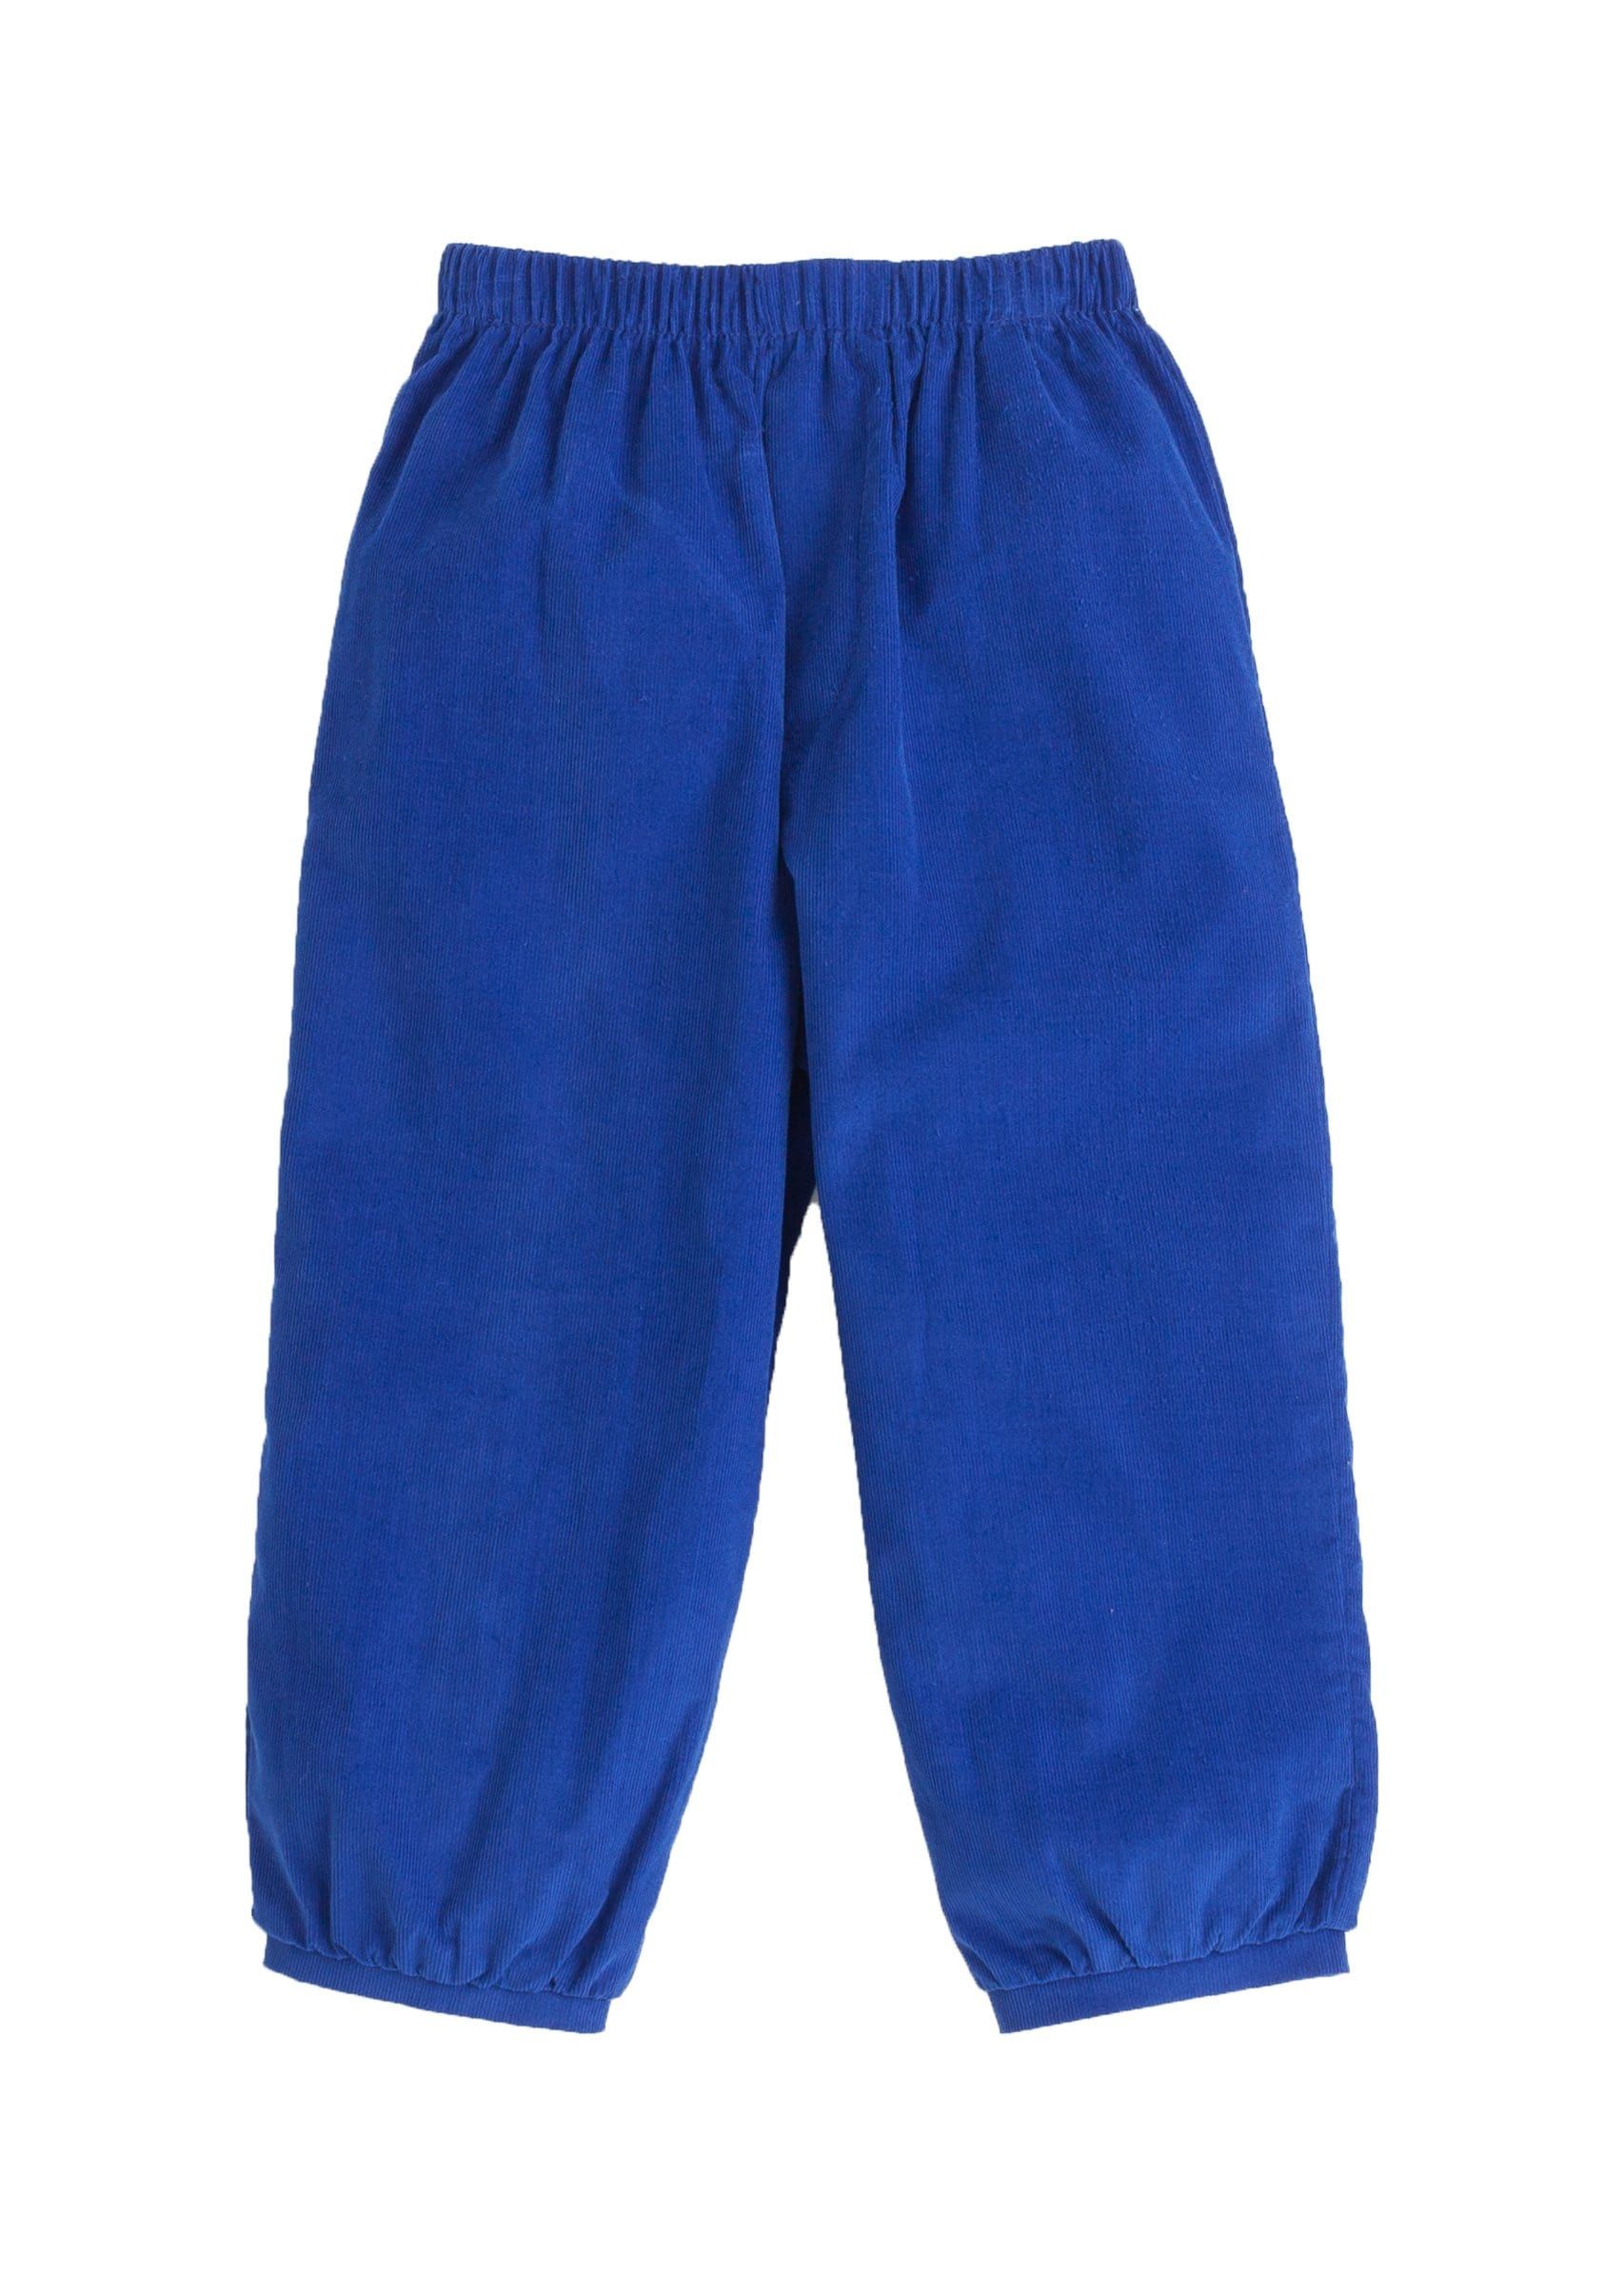 Banded Pull on Pant - Royal Blue, Little English, classic children's clothing, preppy children's clothing, traditional children's clothing, classic baby clothing, traditional baby clothing